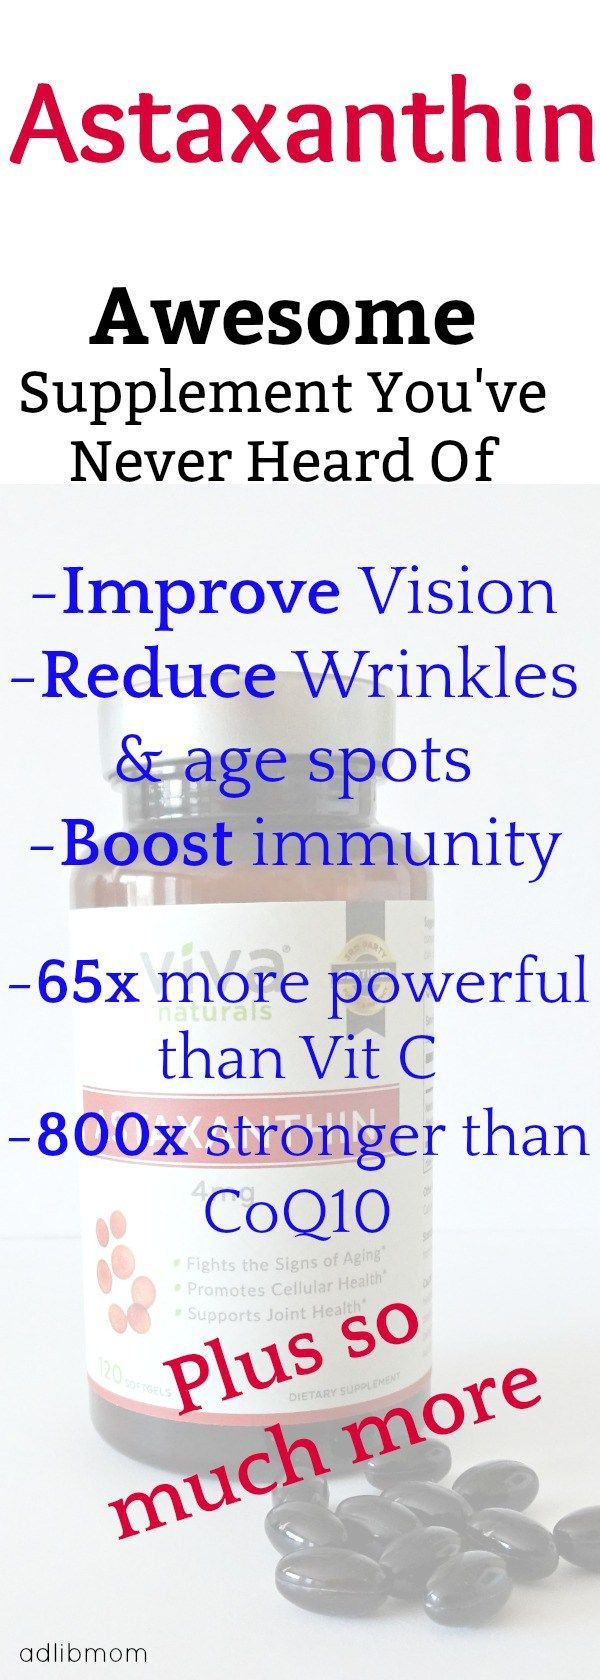 Astaxanthin is one of the most powerful antioxidants found in nature. It may be a supplement that you have never heard of. It has many health benefits Astaxanthin....